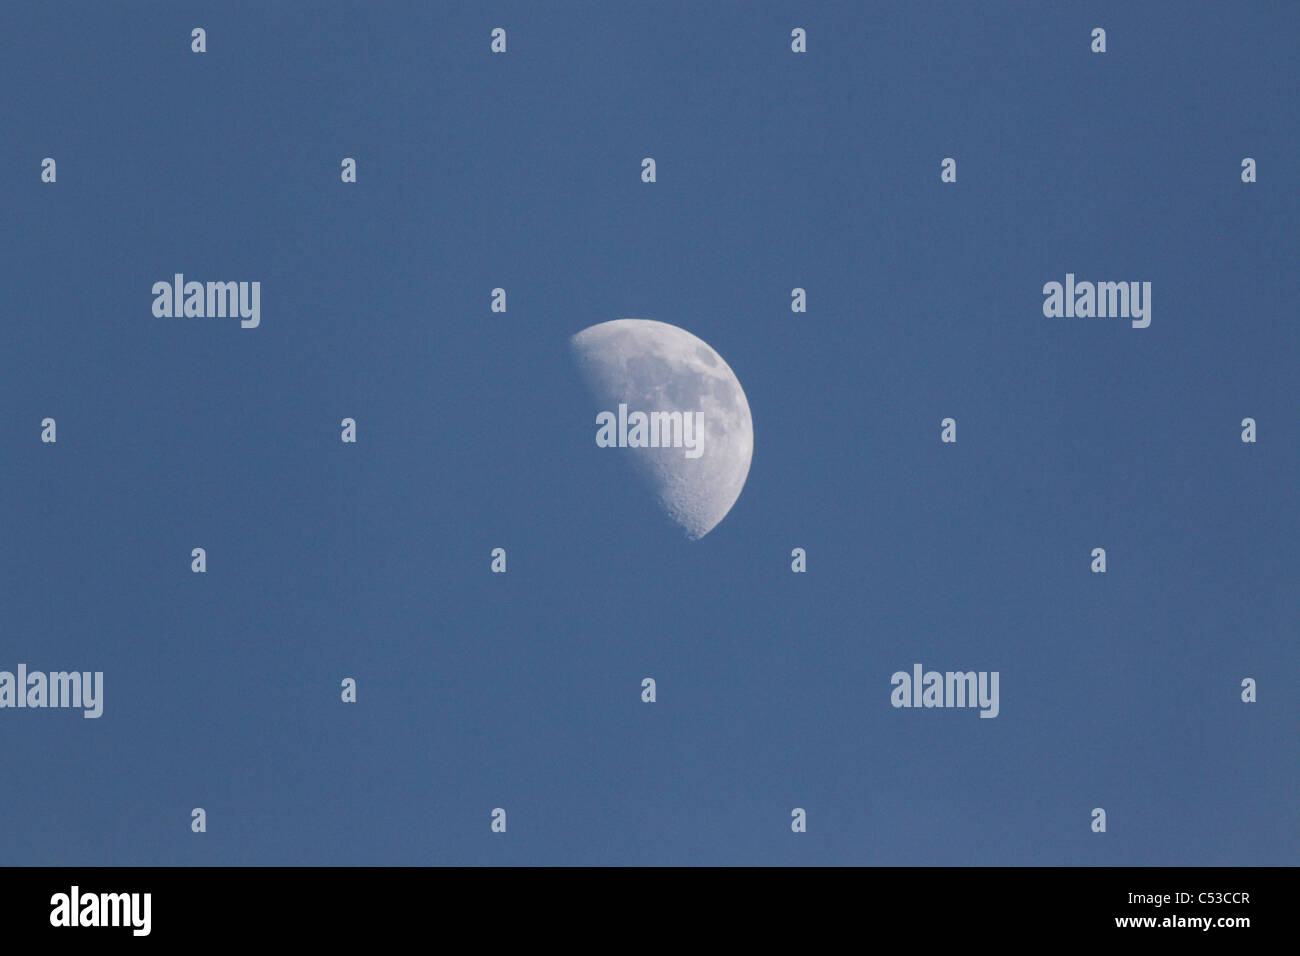 waxing moon seen at first quarter in early spring in the united kingdom - Stock Image